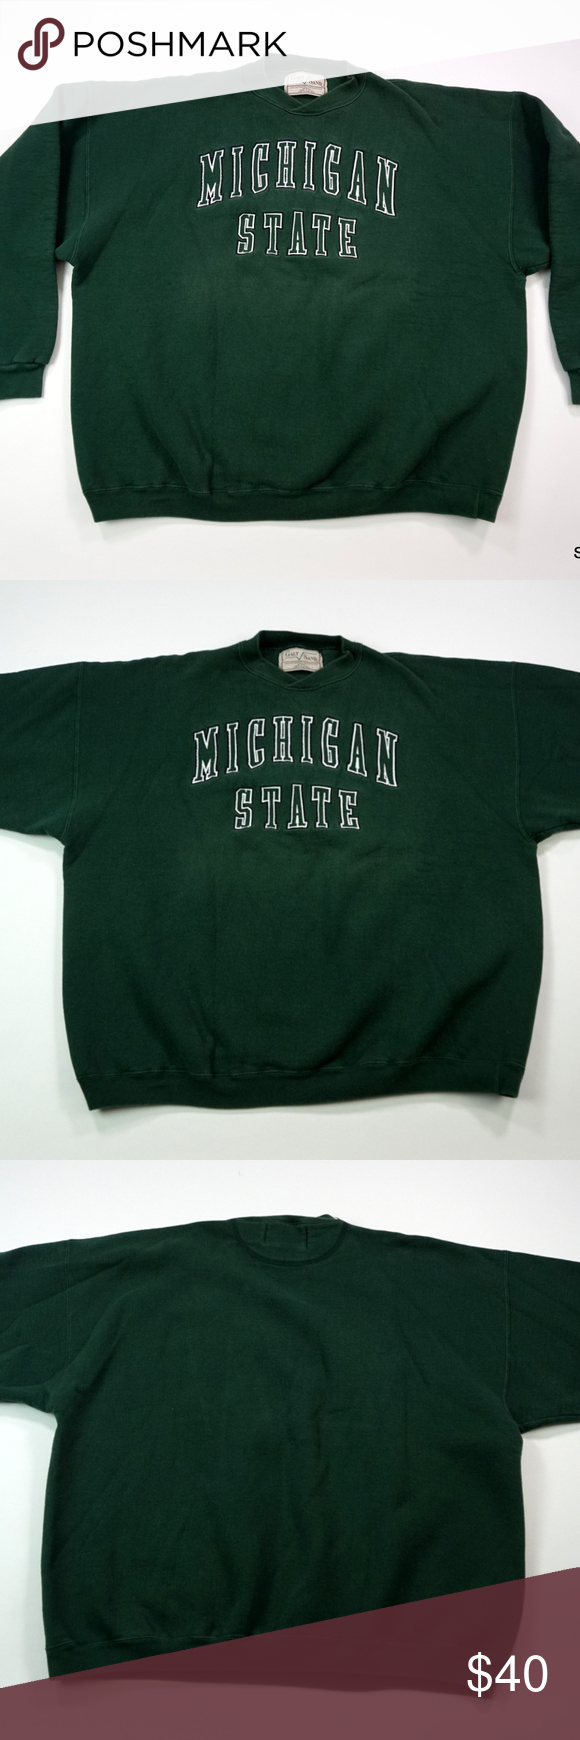 Vtg Michigan State Spartans Embroidered Sweatshirt Embroidered Sweatshirts Sweatshirts Michigan State Spartans [ 1740 x 580 Pixel ]